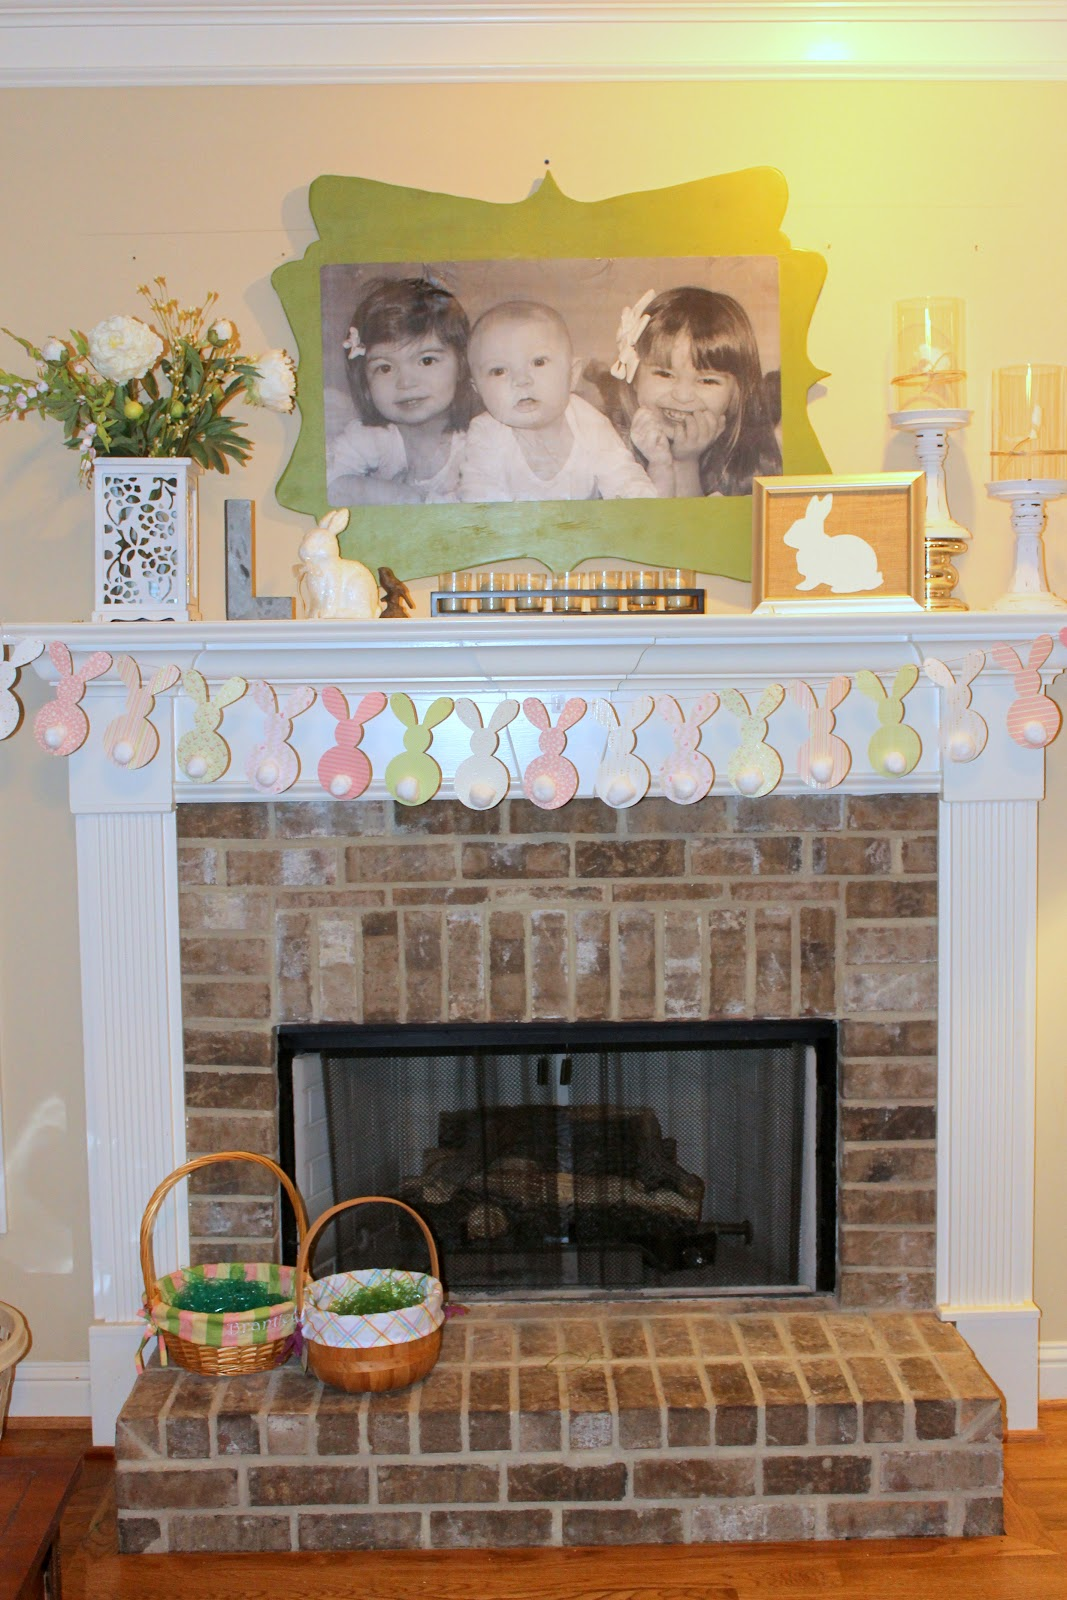 Easter Decorating Mantel Ideas   Easter Mantel